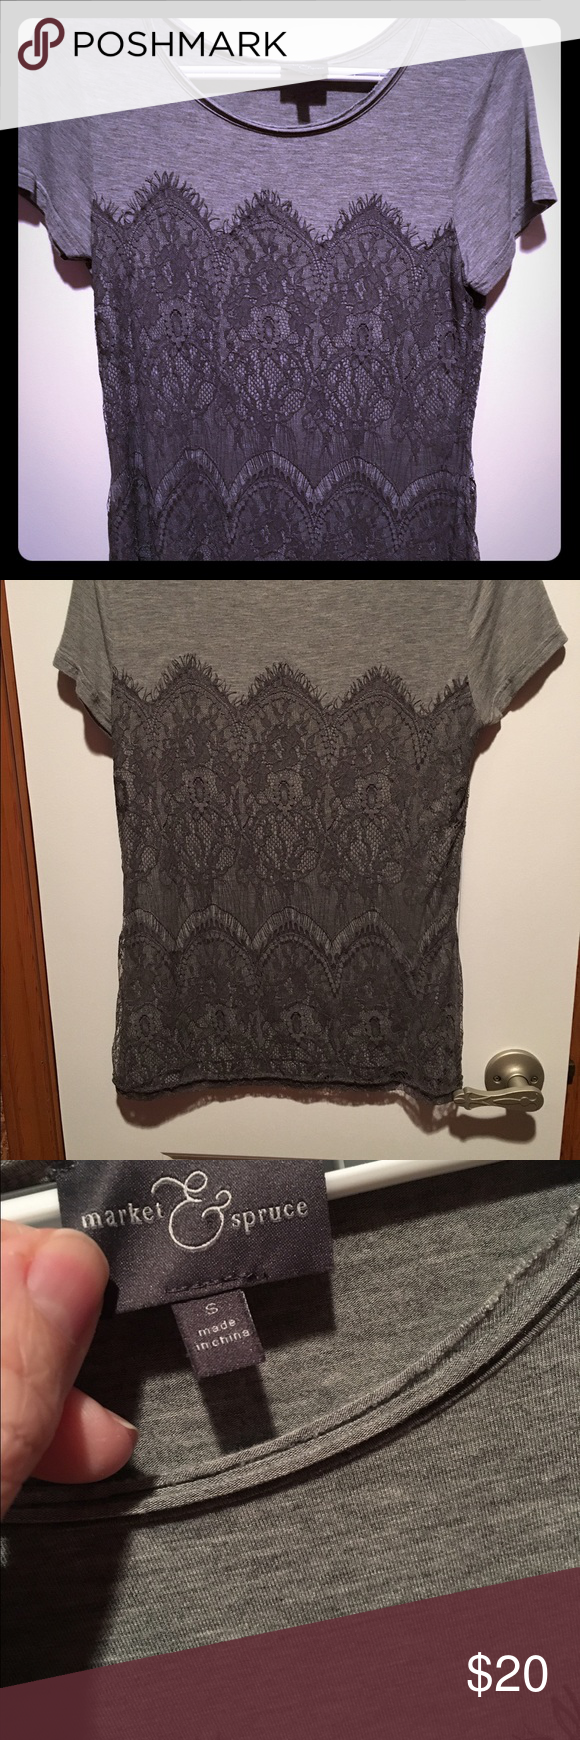 "Market & Spruce Gray Lace Top Market & Spruce top in gray with lace contrast. Cotton blend with polyester contrast. Measures approximately 25"" from shoulder to hem. Gently worn and stored in a smoke-free and pet-free home. Cold water wash on gentle cycle. Market & Spruce Tops"